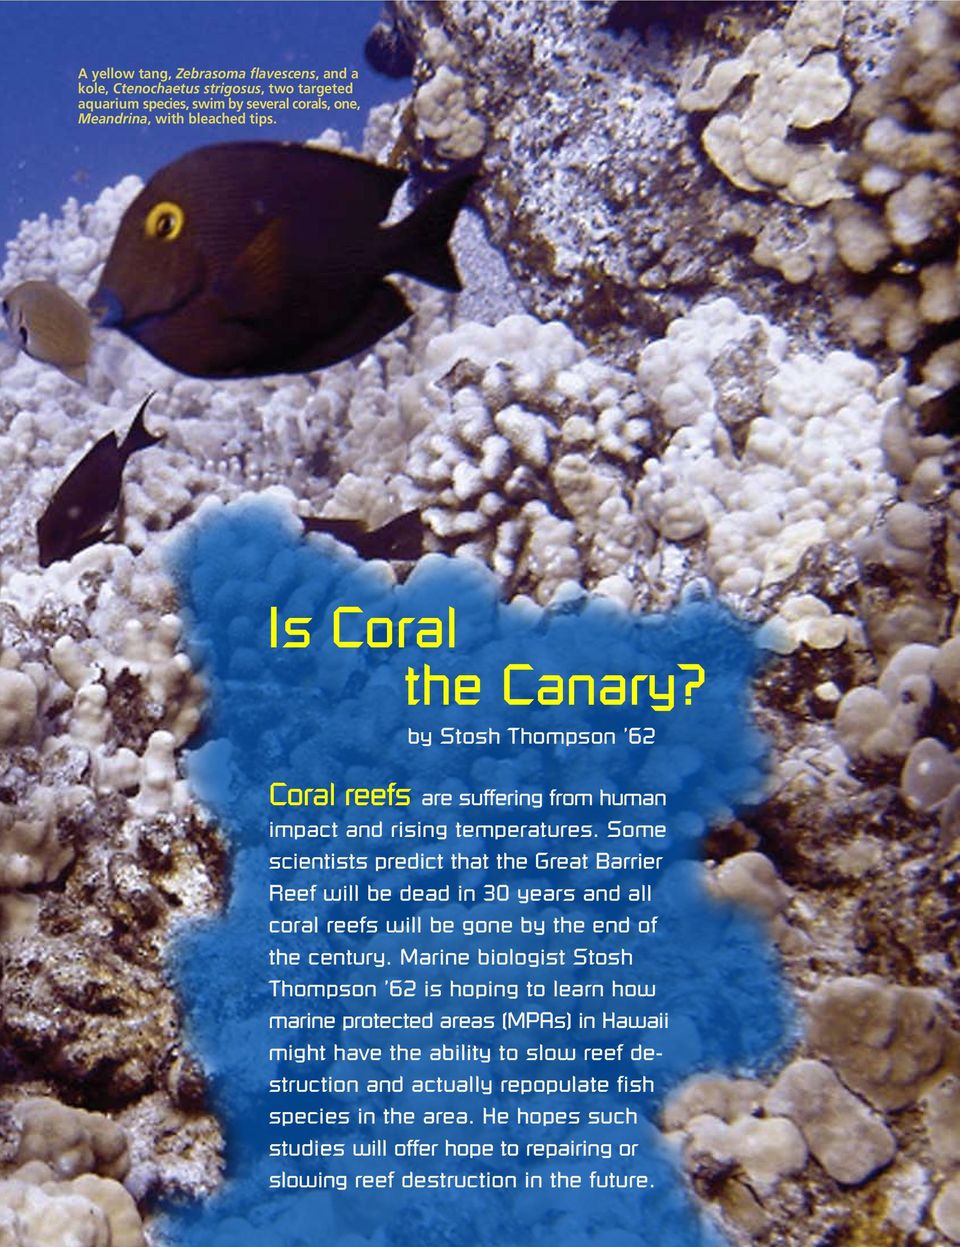 Some scientists predict that the Great Barrier Reef will be dead in 30 years and all coral reefs will be gone by the end of the century.